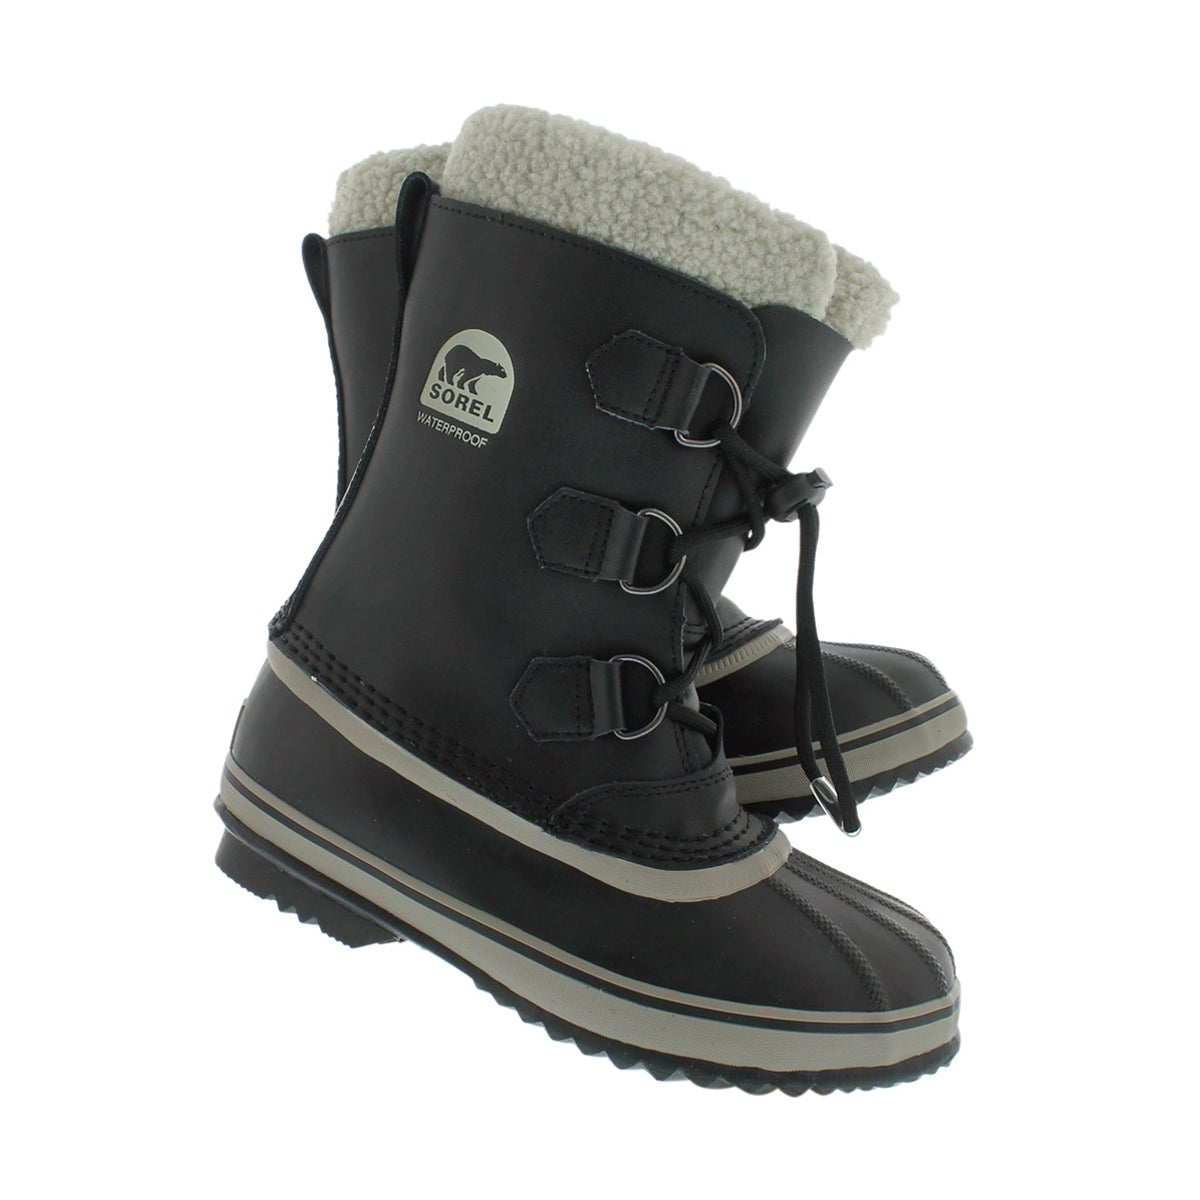 Bys Yoot Pac TP blk wtpf winter boot